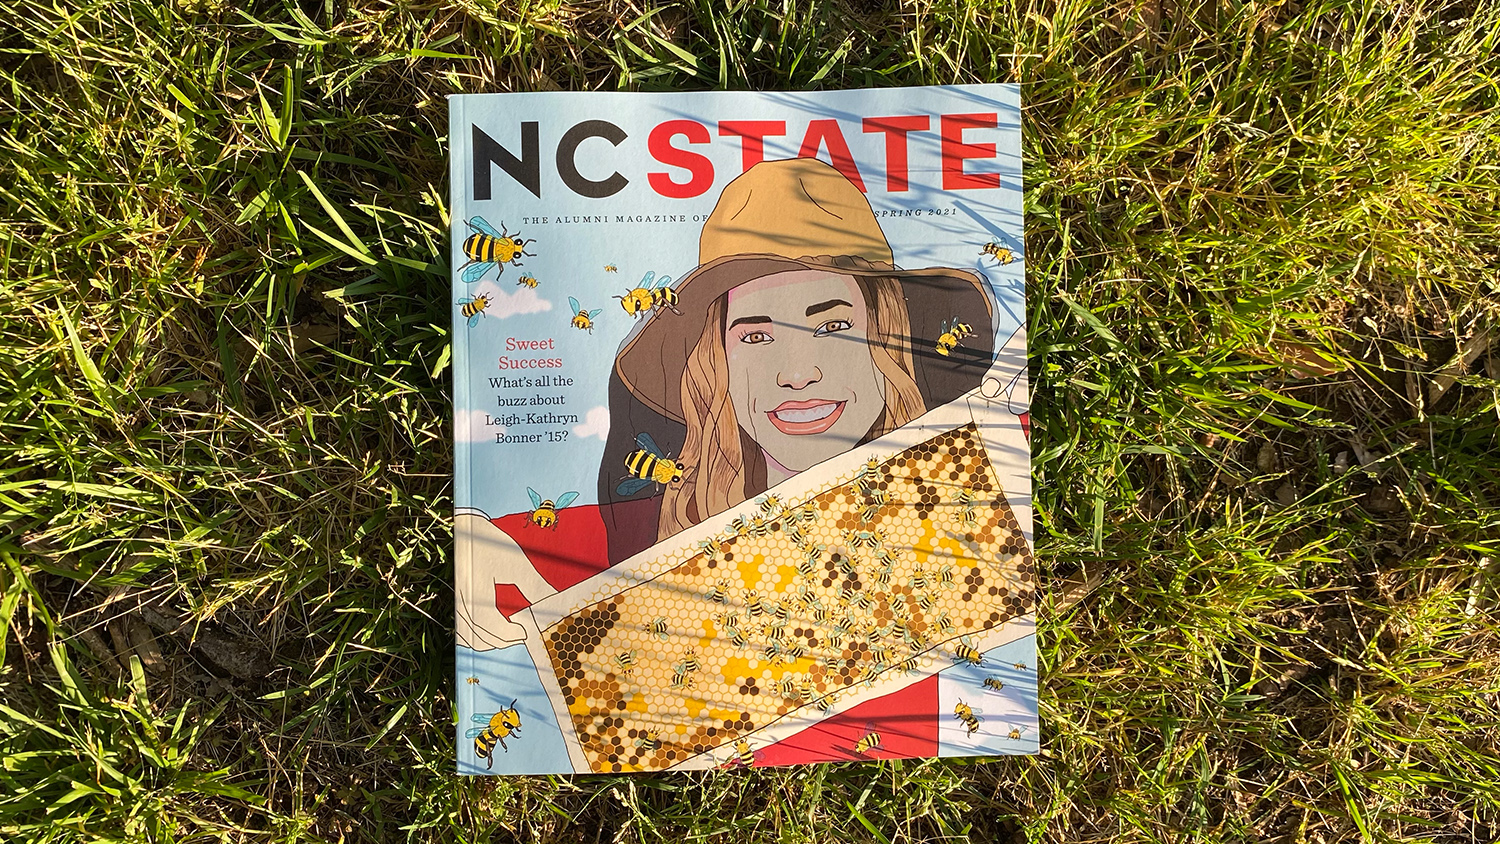 The Spring 2021 issue laying in grass during golden hour.